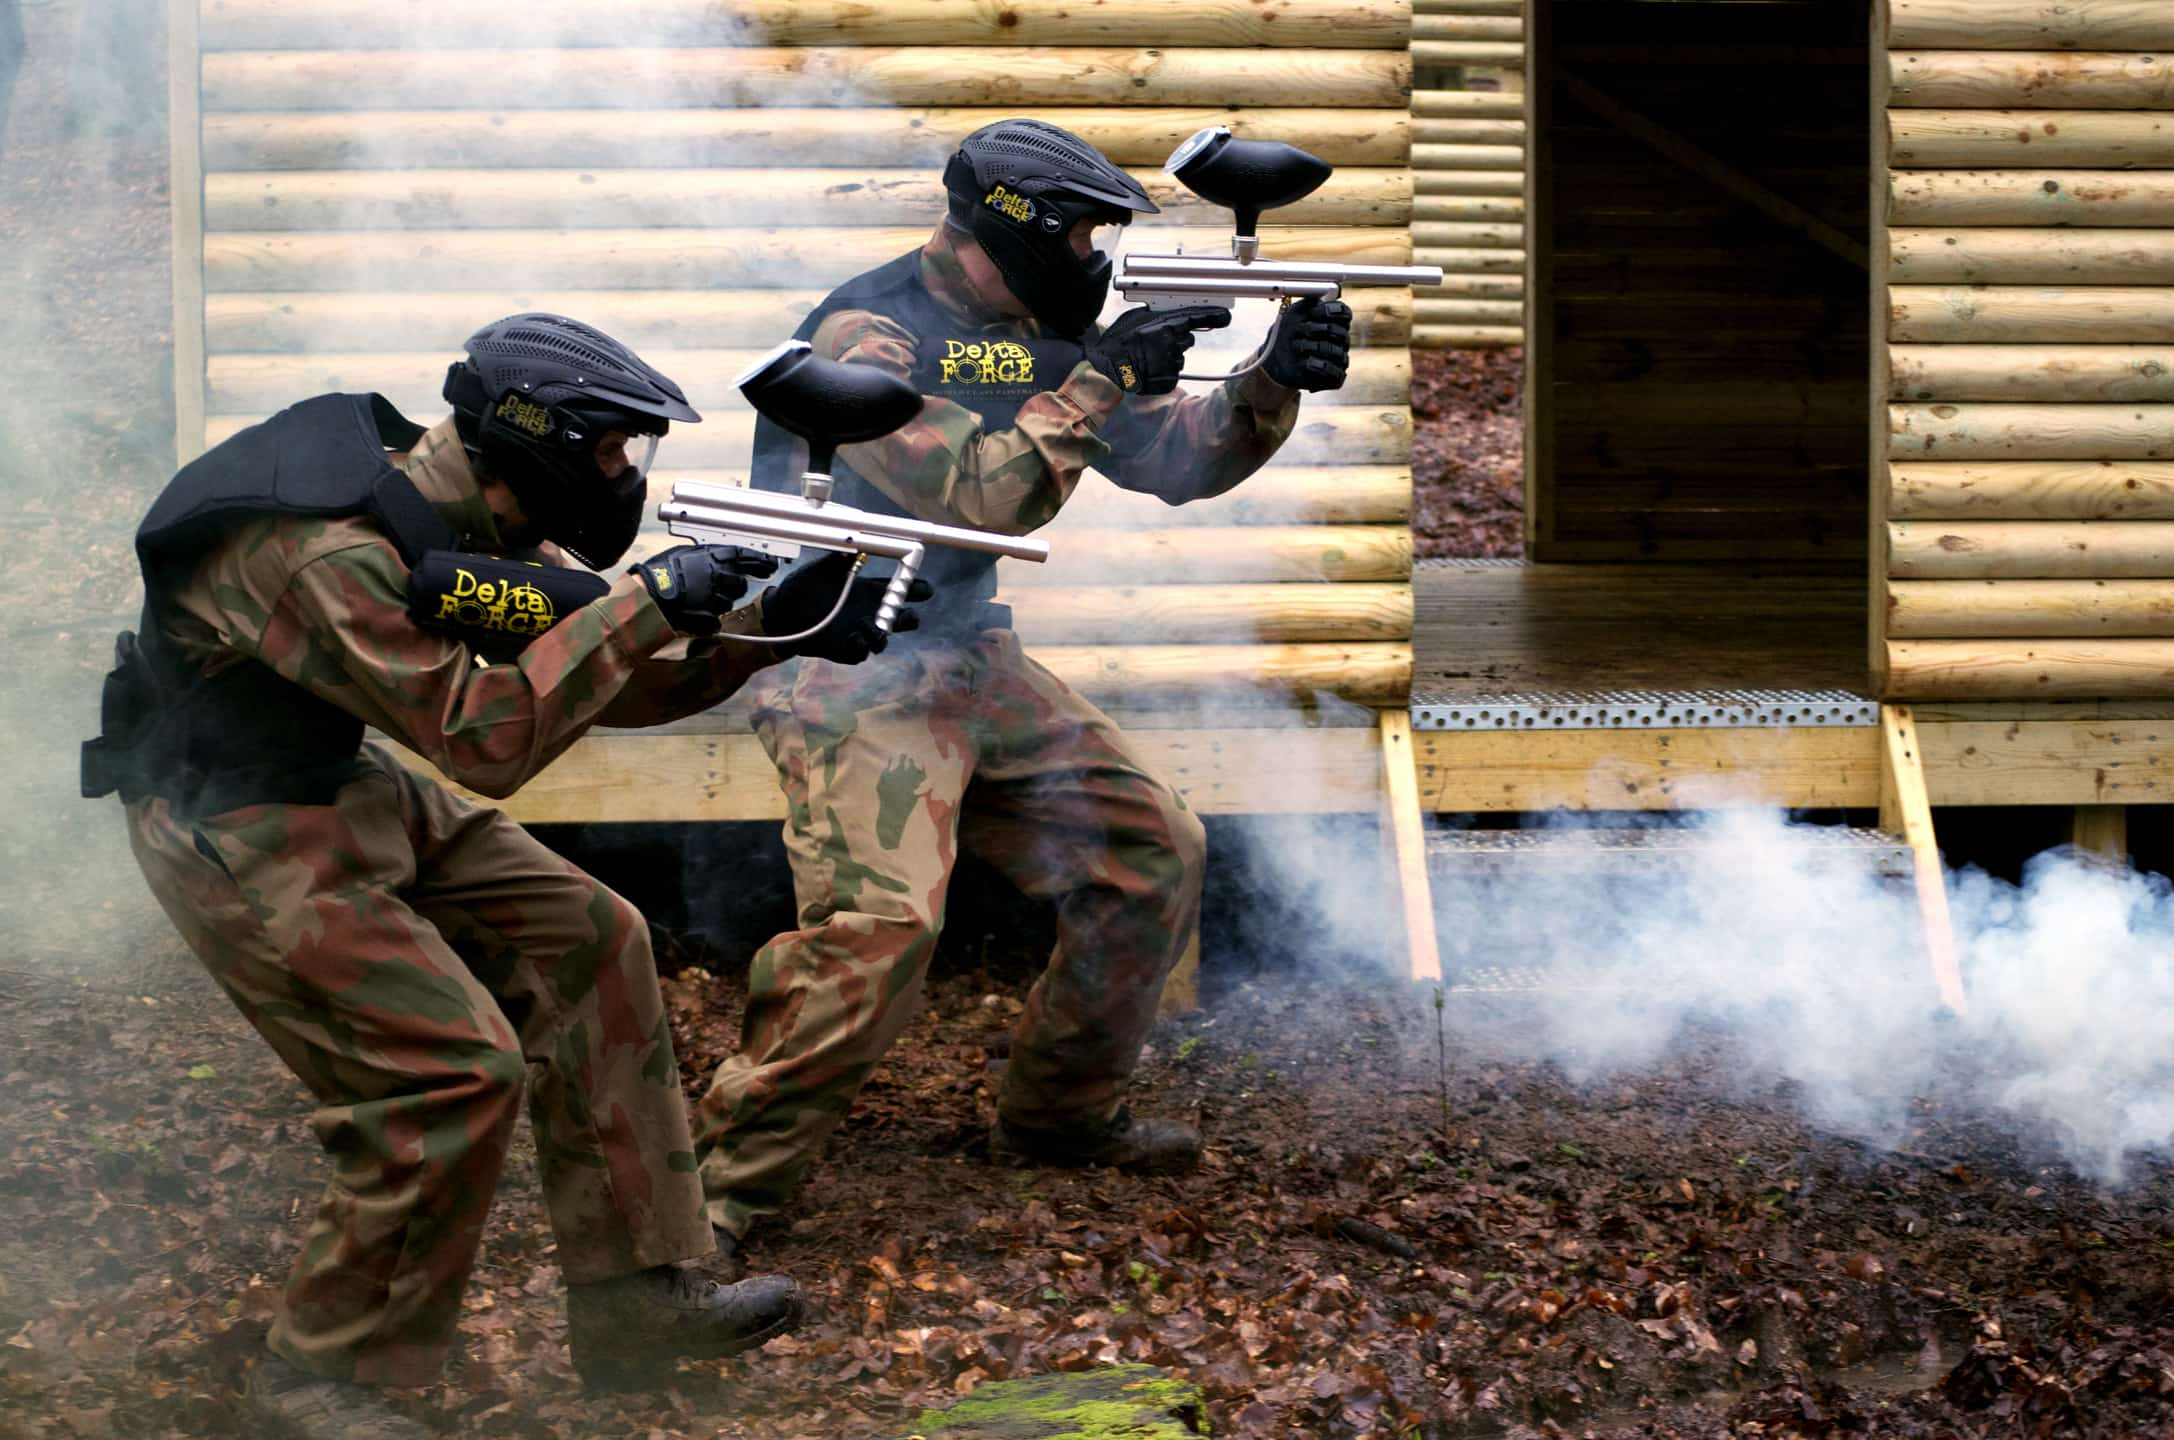 How To Play Paintball Like A Pro (A Guide For Beginners 2020)